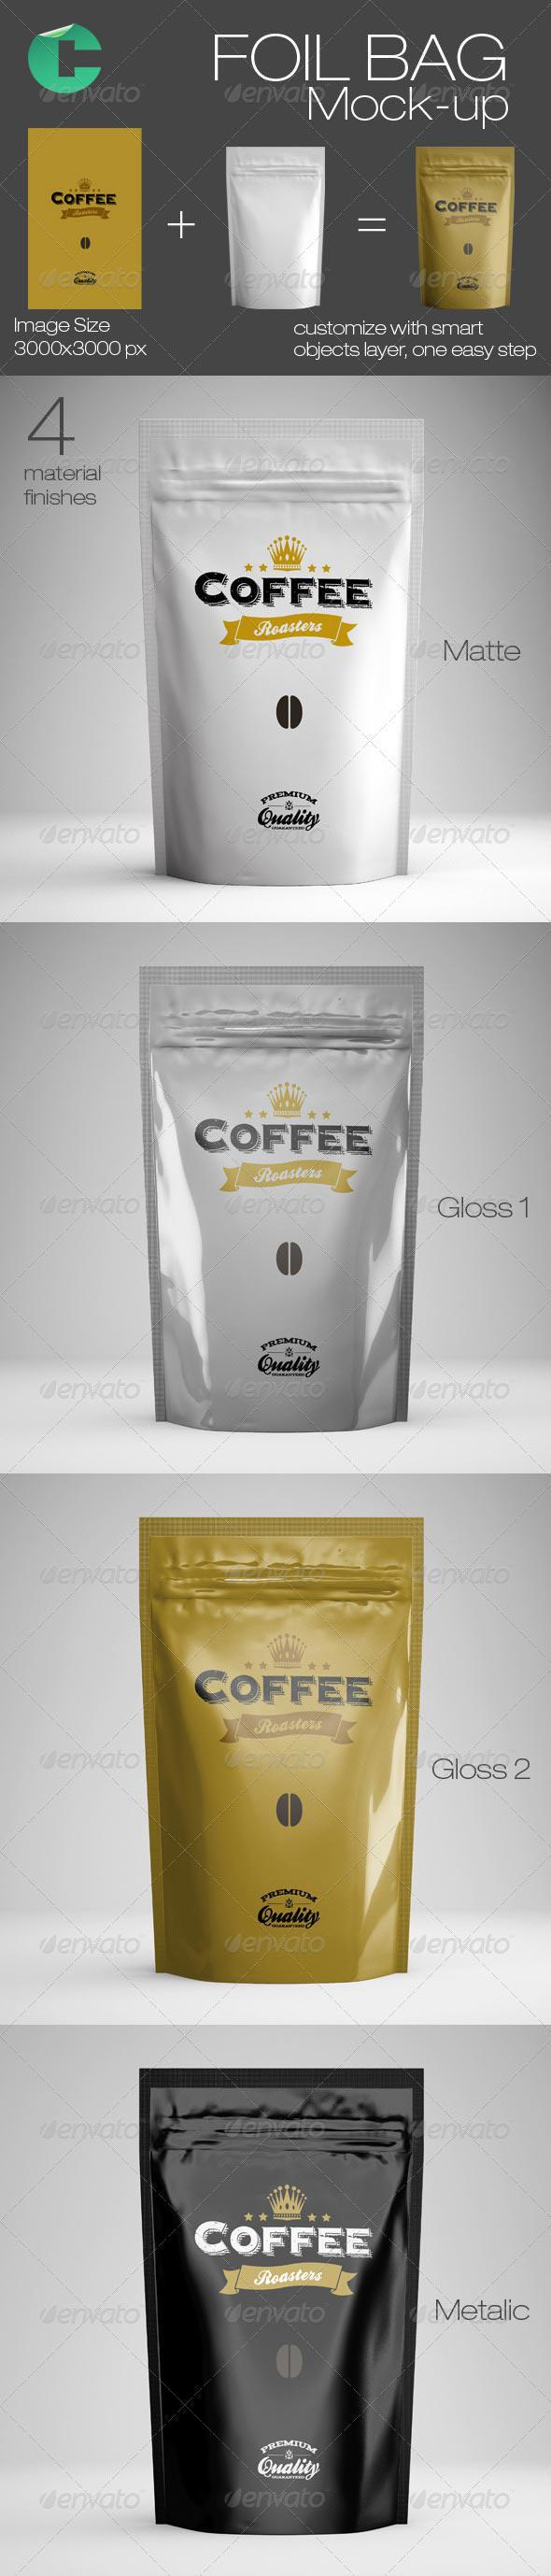 Foil Bag Mock-up | Food and Drink